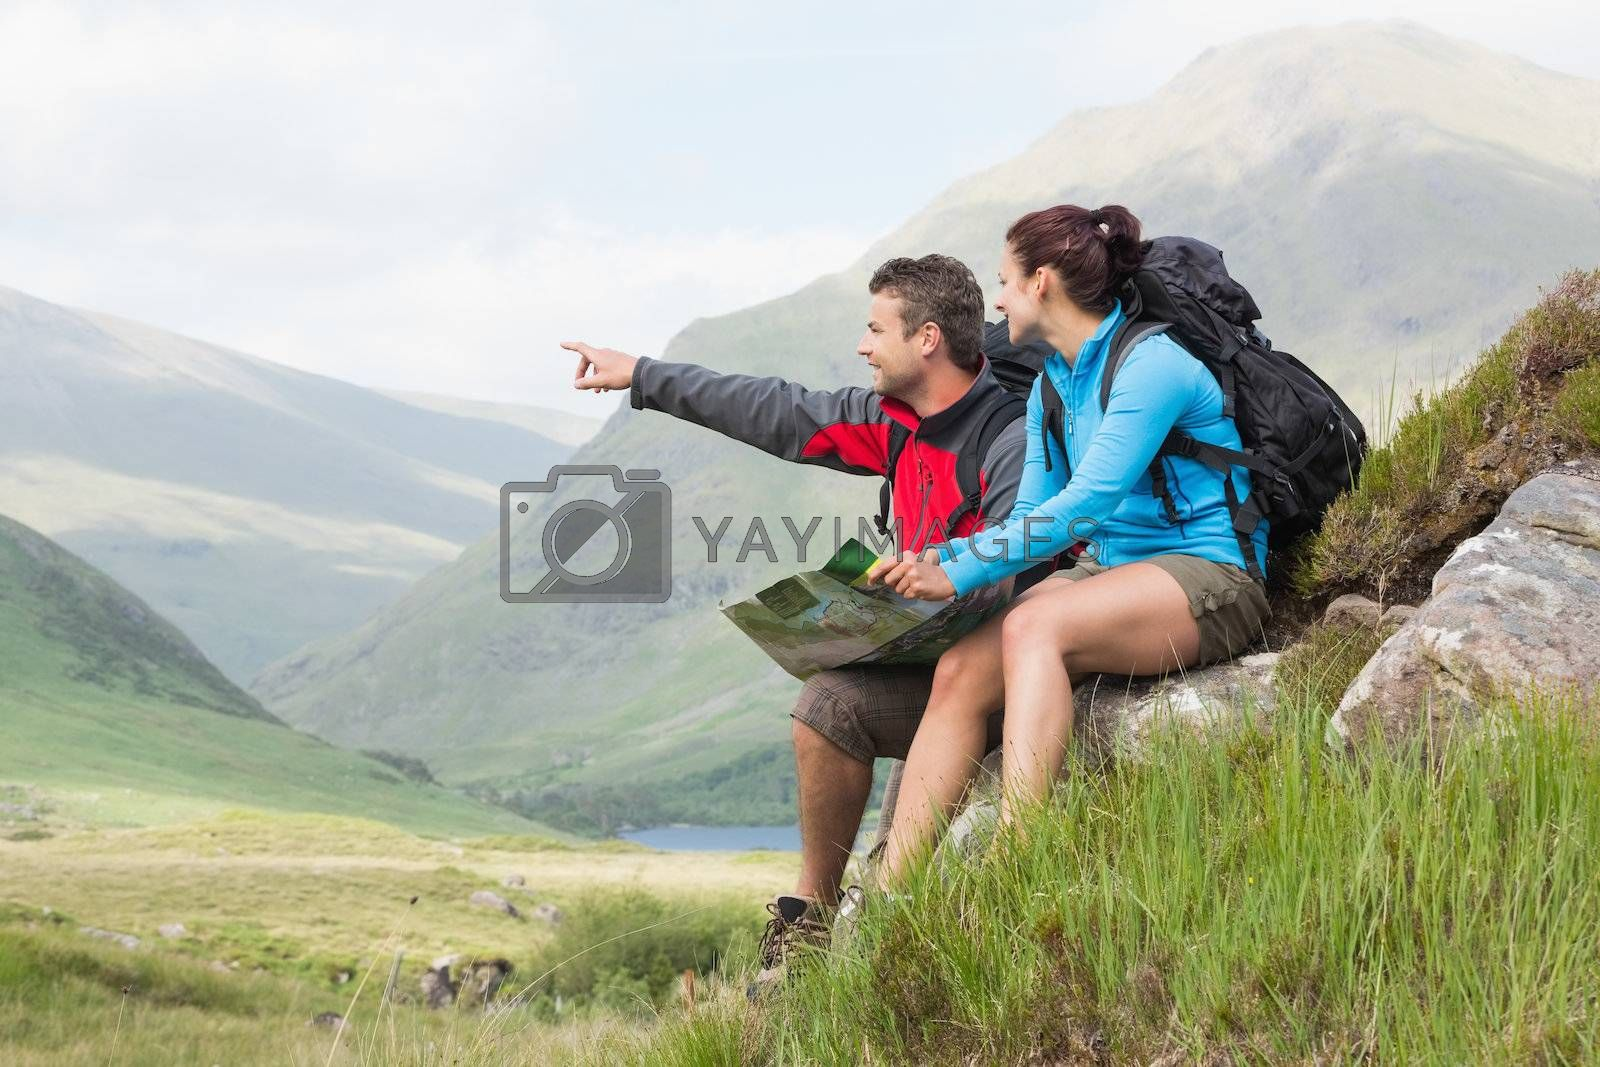 Couple taking a break after hiking uphill and holding map by Wavebreakmedia